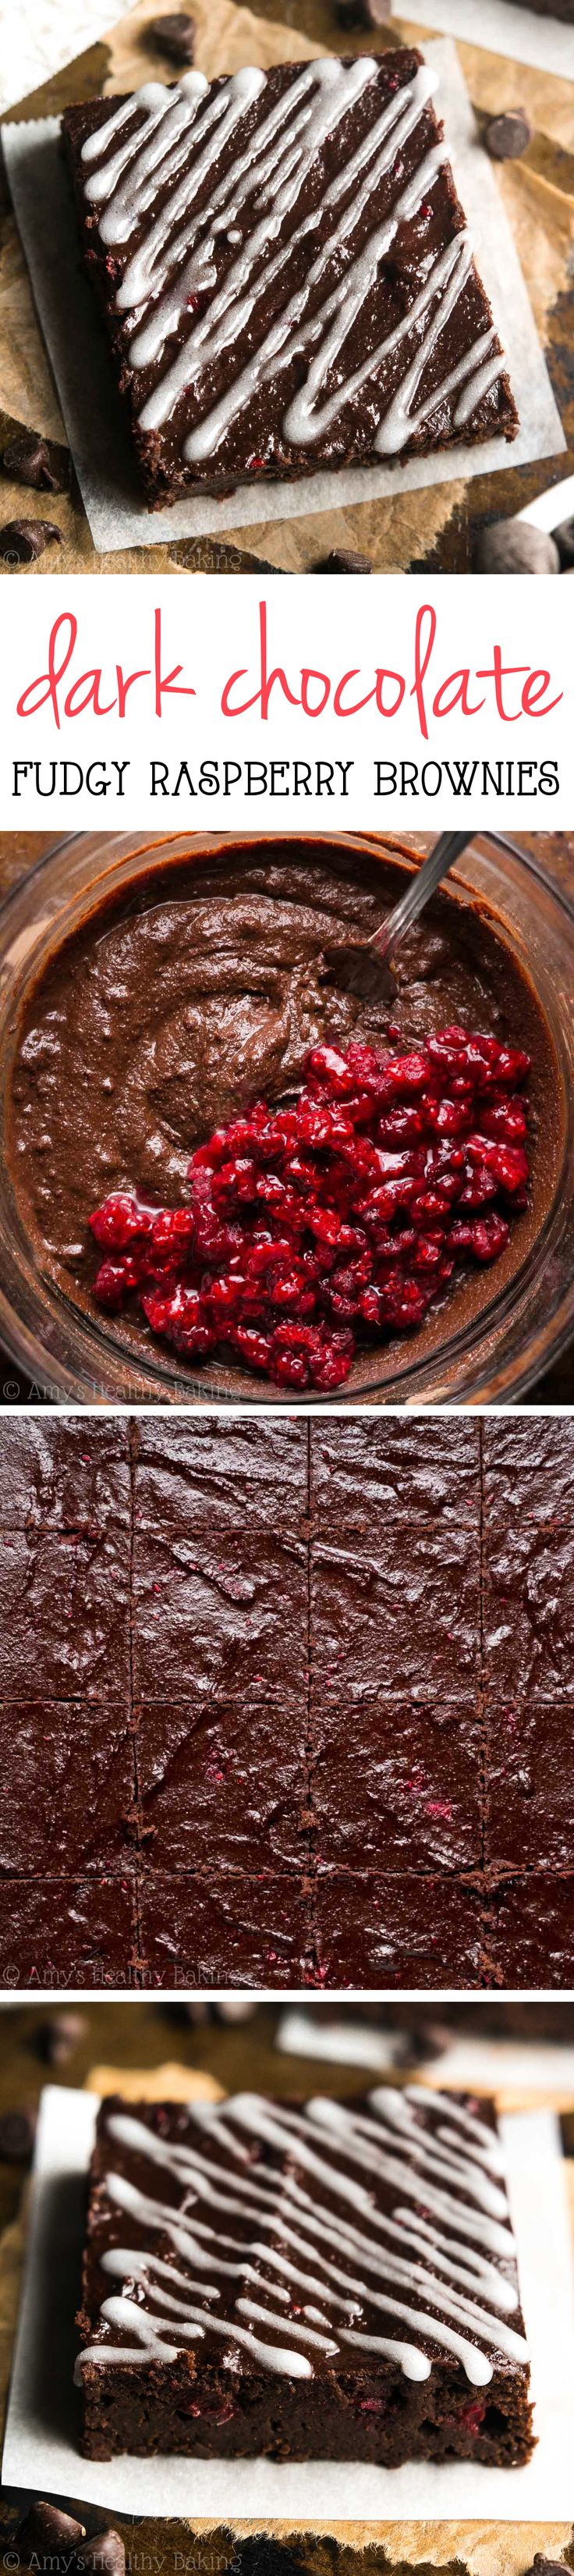 This homemade, from-scratch recipe is just as easy as a boxed mix! So rich & the BEST you'll ever eat -- but they're secretly skinny & guilt-free!(Best Chocolate Brownies)